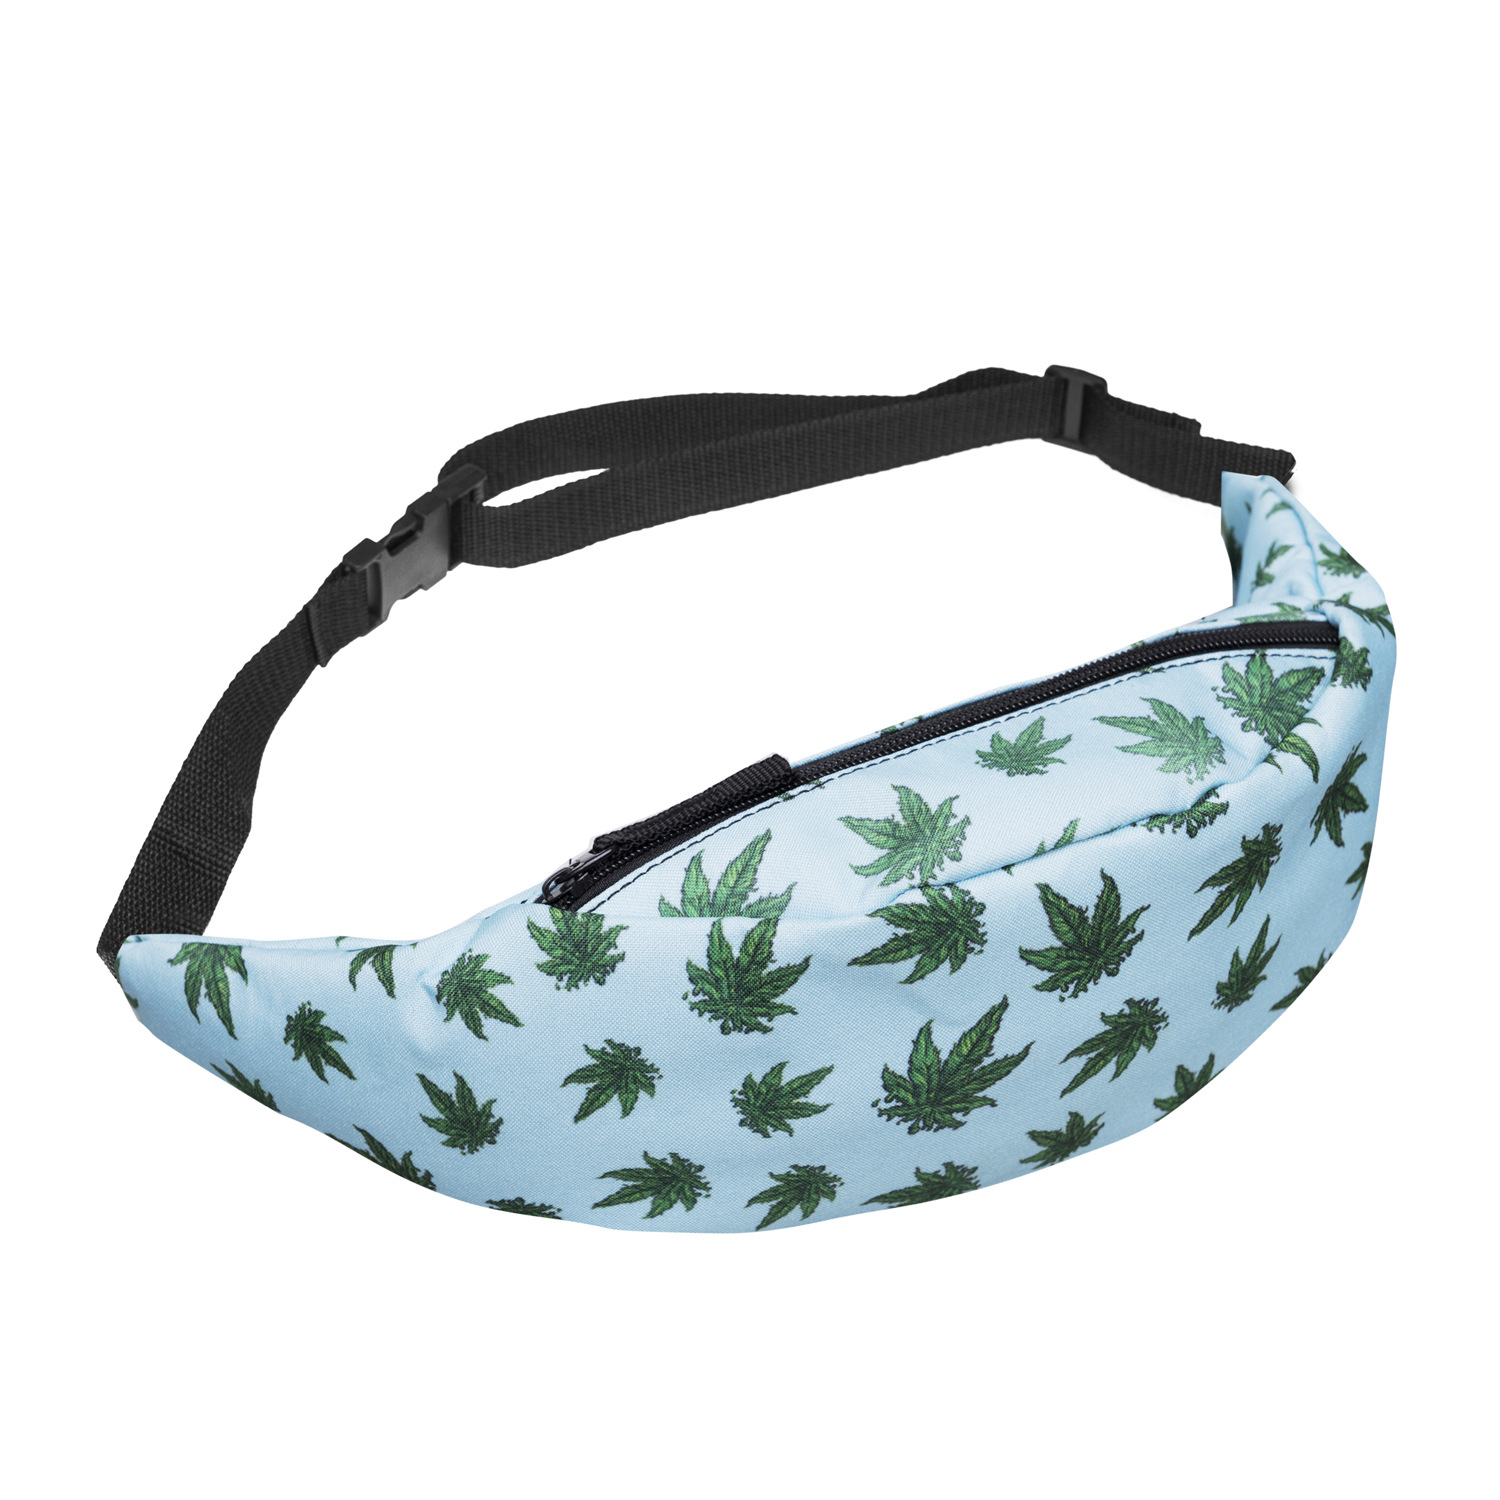 Digital Printing Blue Green Hemp Fimble Leaf Wallet Chest Bag Shoulder Bag Hot Selling